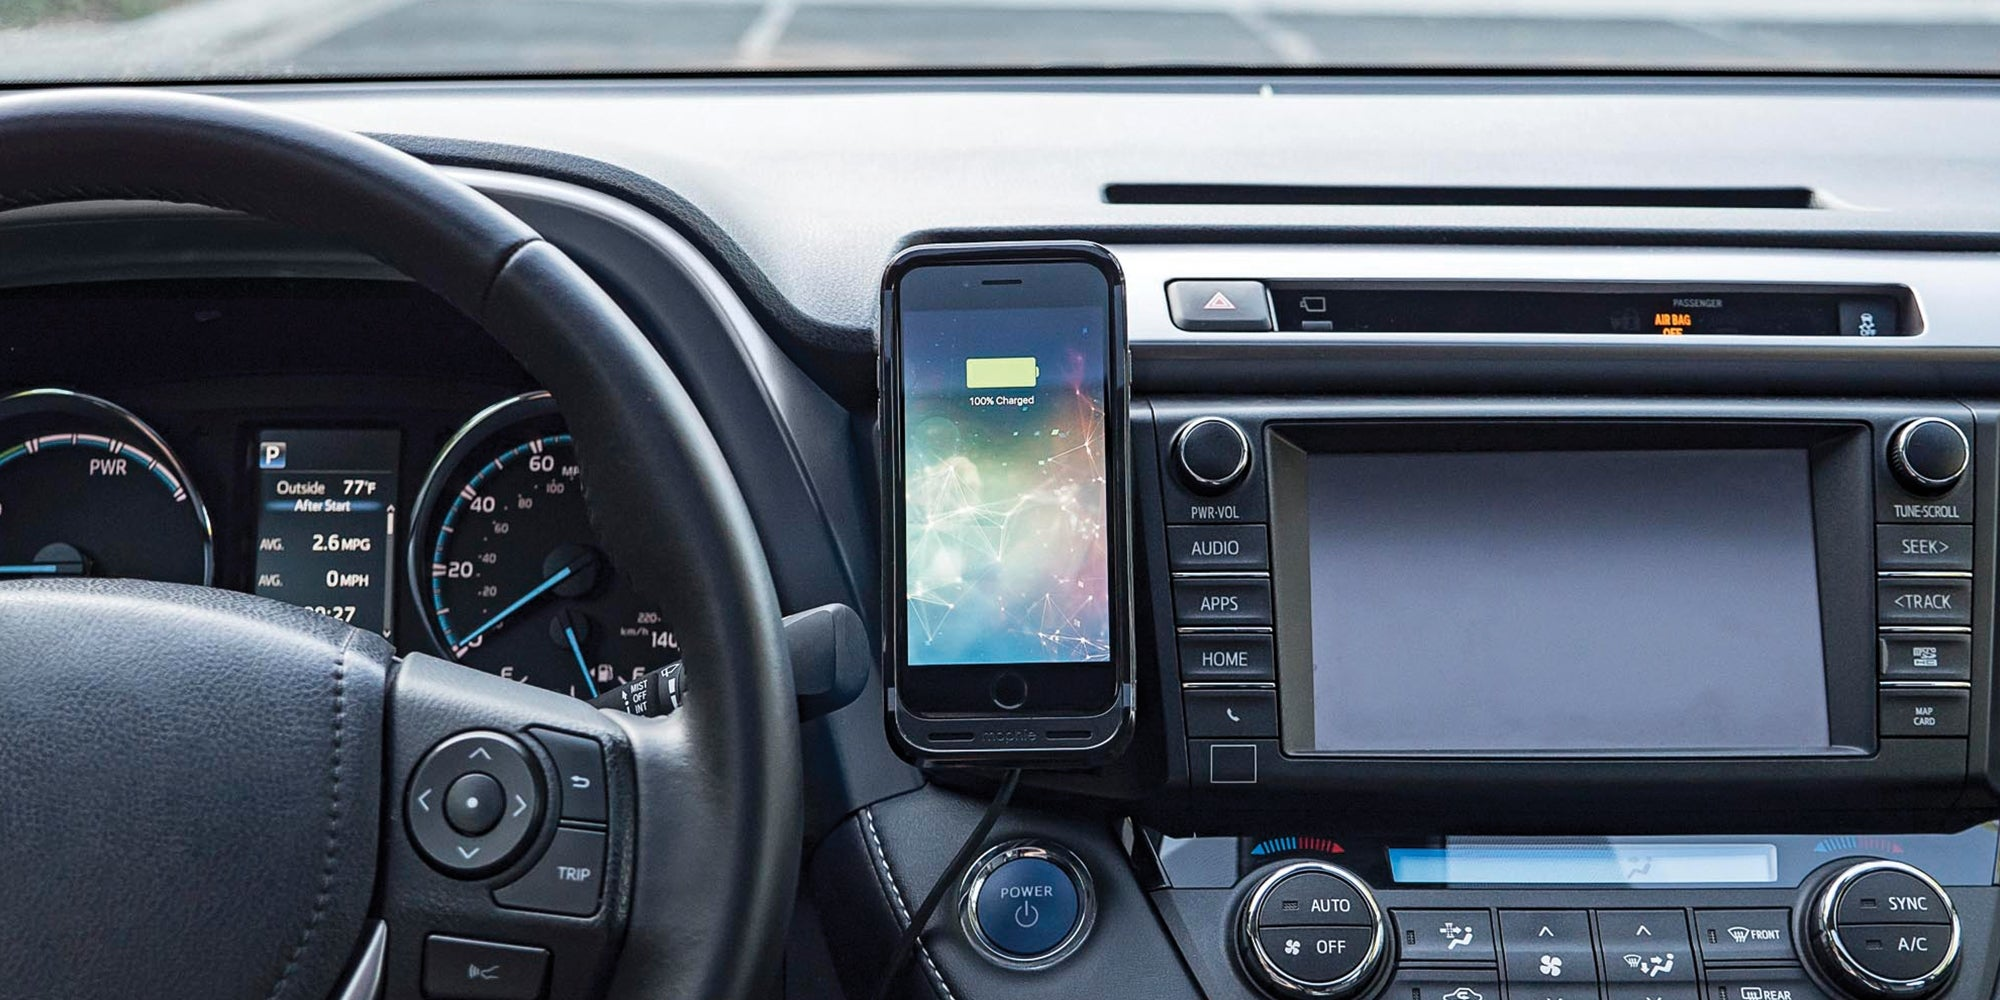 A phone in a car with a juice pack flex